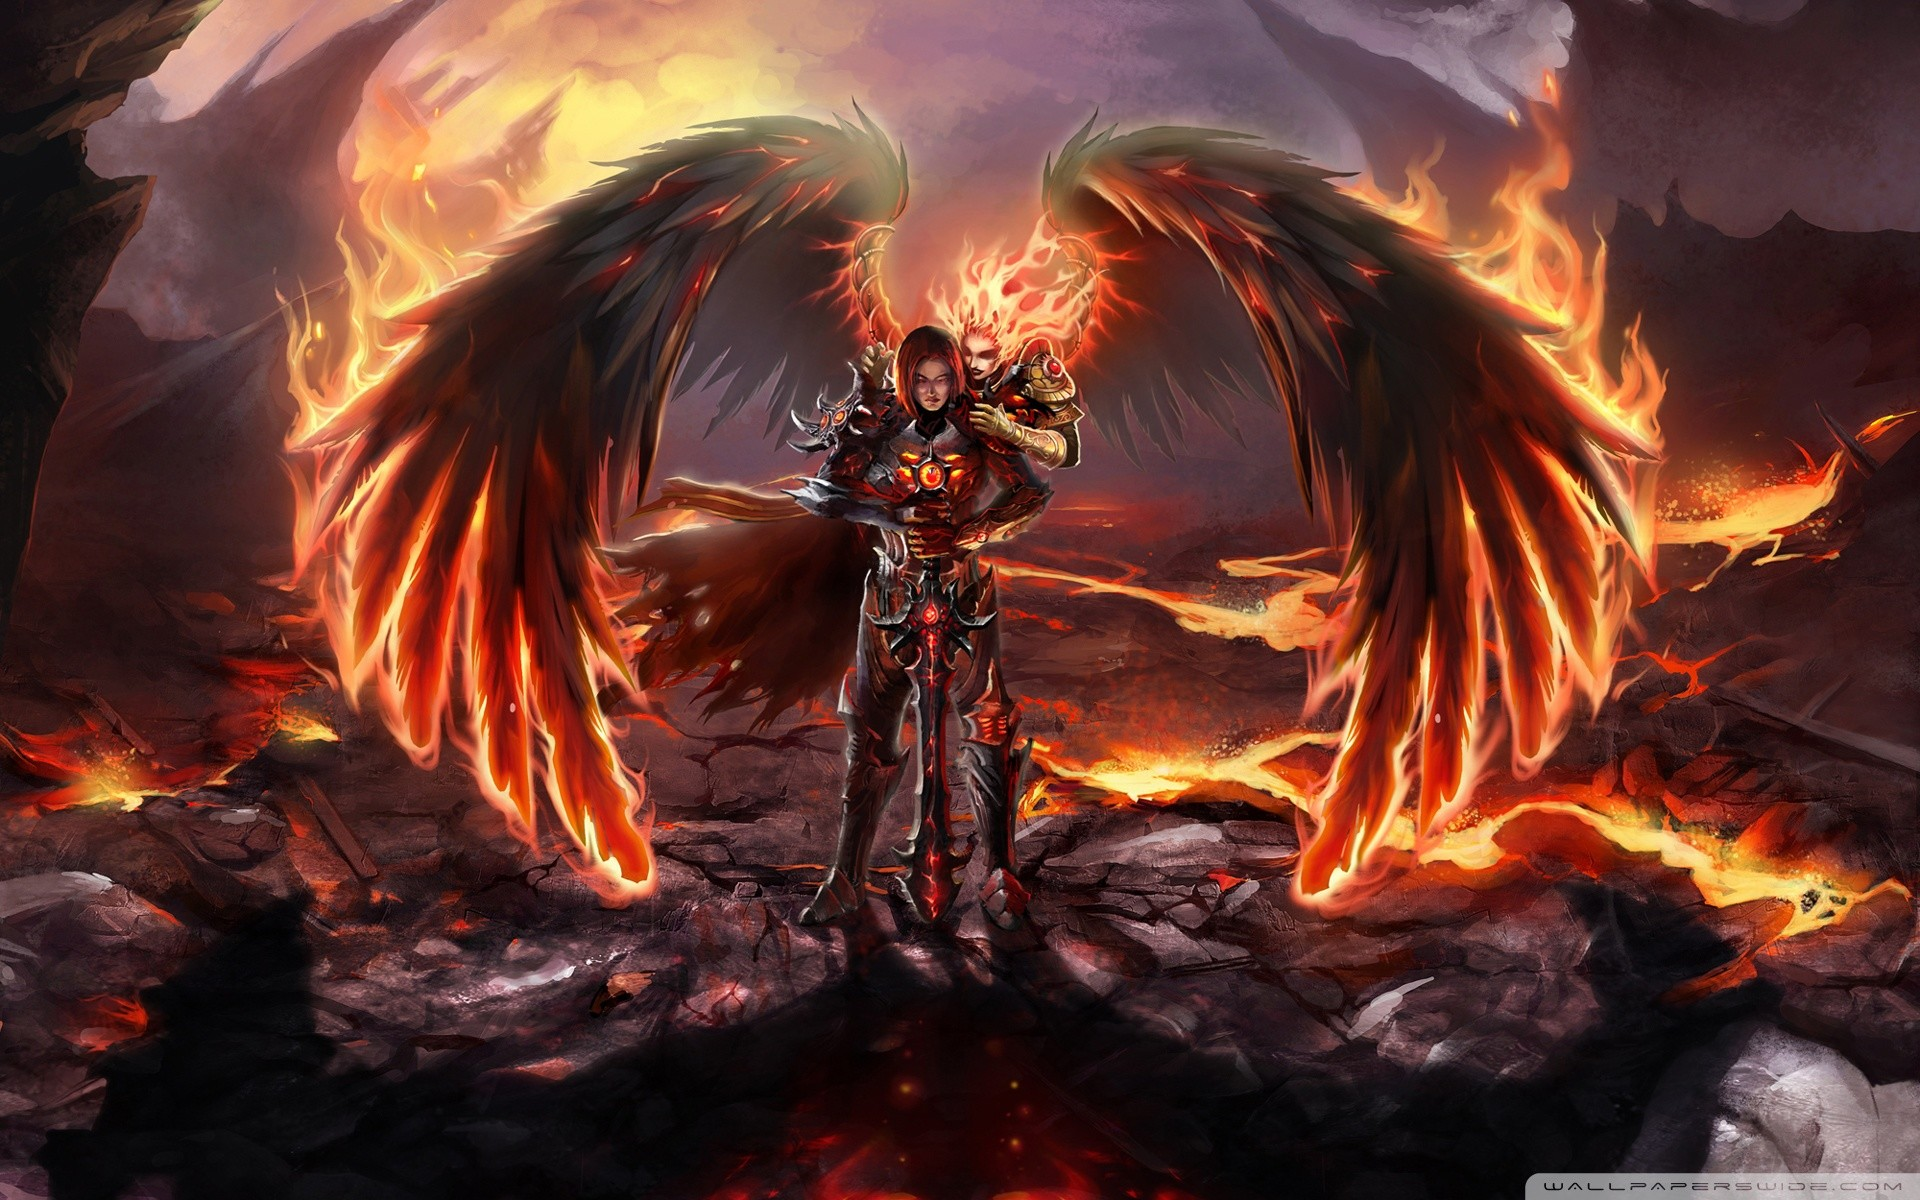 Badass Angel Anime Wallpapers with High Definition Resolution px  731.47 KB